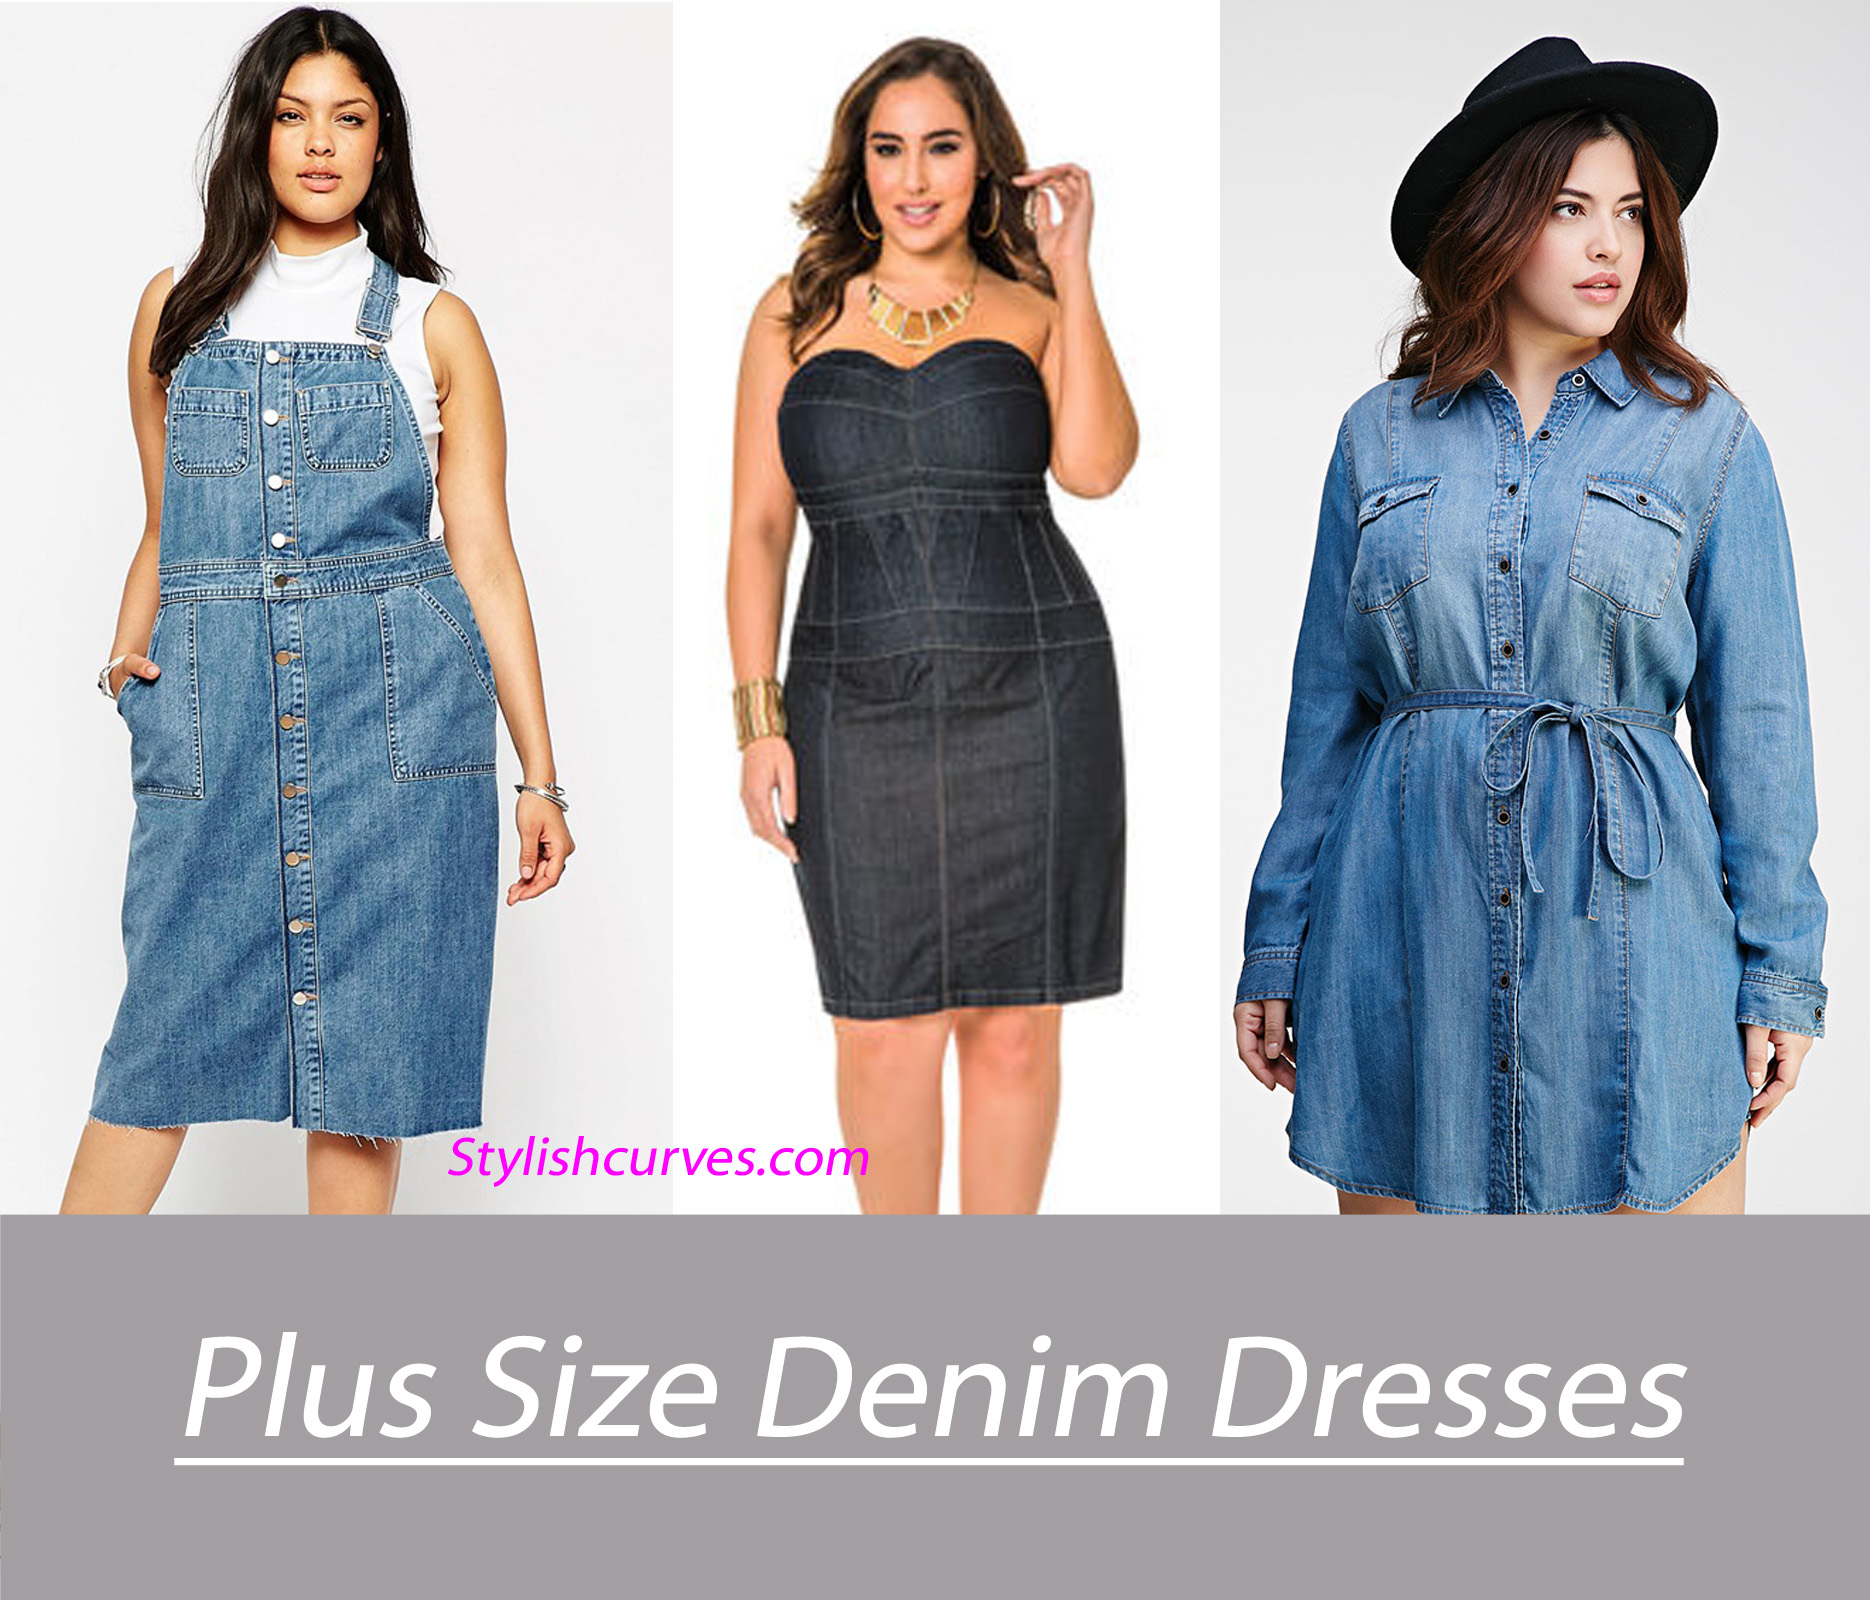 11 Plus Size Denim And Chambray Dresses Under $100 | Stylish Curves